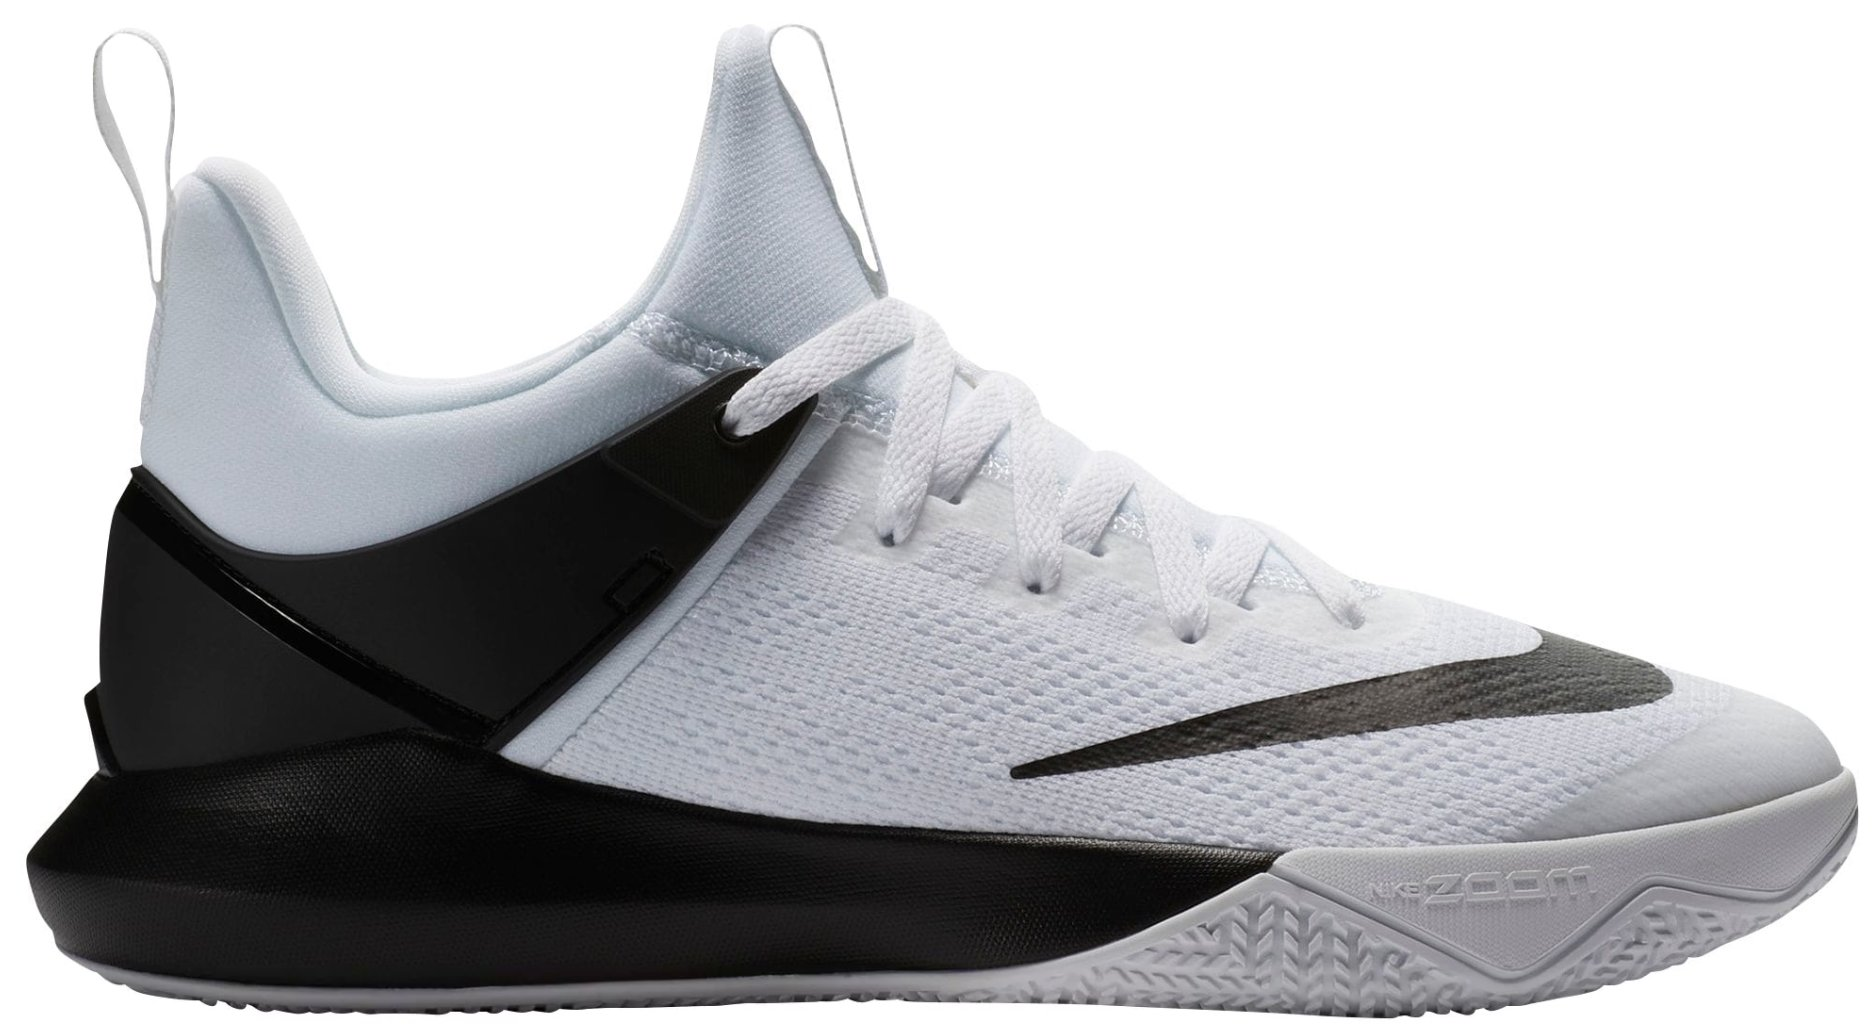 best sneakers 68e9a e5bc6 Galleon - NIKE Men s Zoom Shift Basketball Shoes US (7.5 M US, White Black)